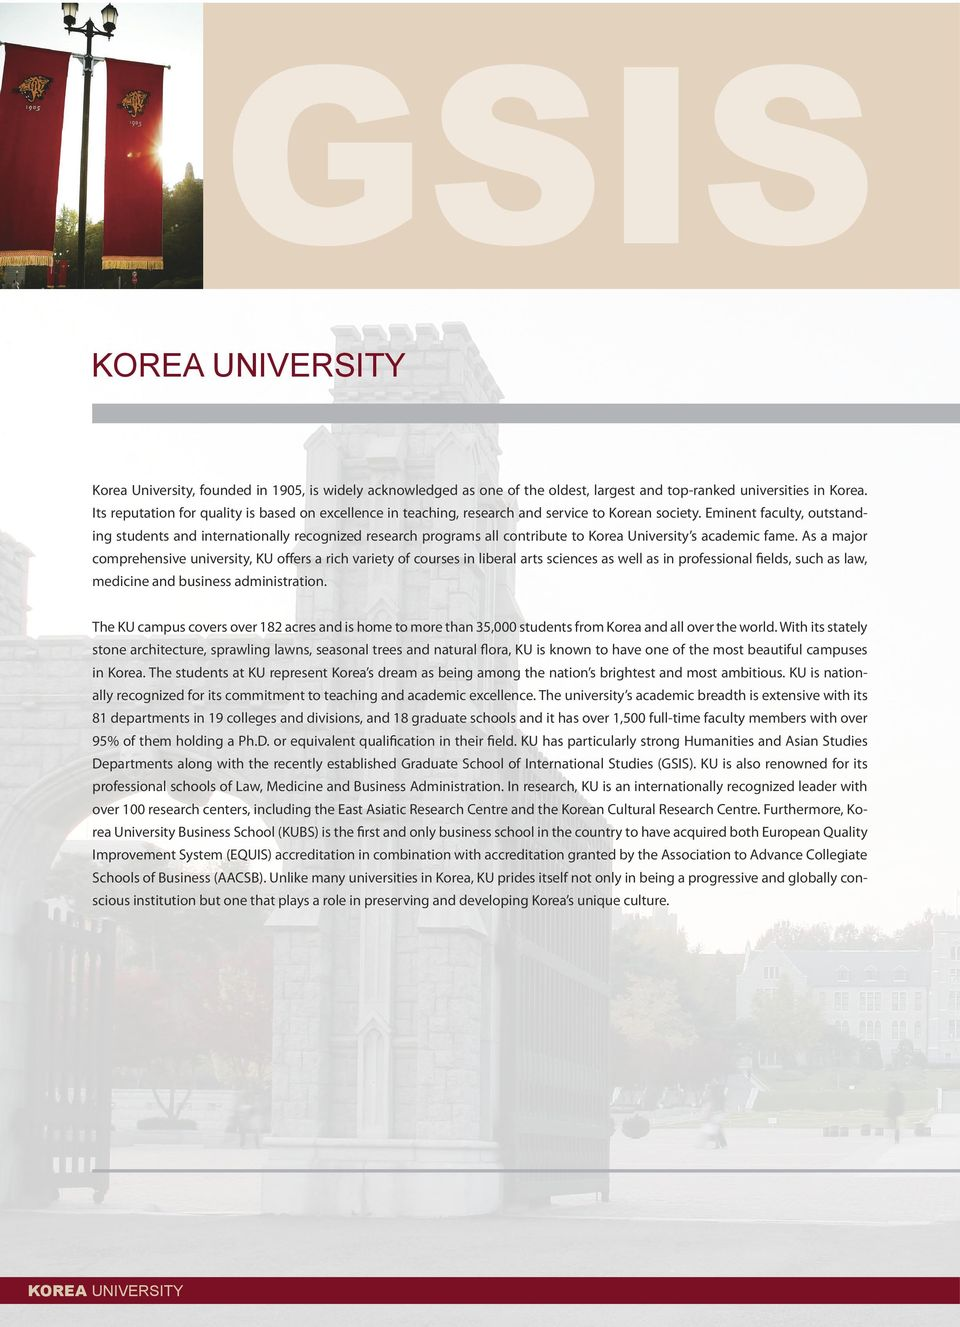 Eminent faculty, outstanding students and internationally recognized research programs all contribute to Korea University s academic fame.